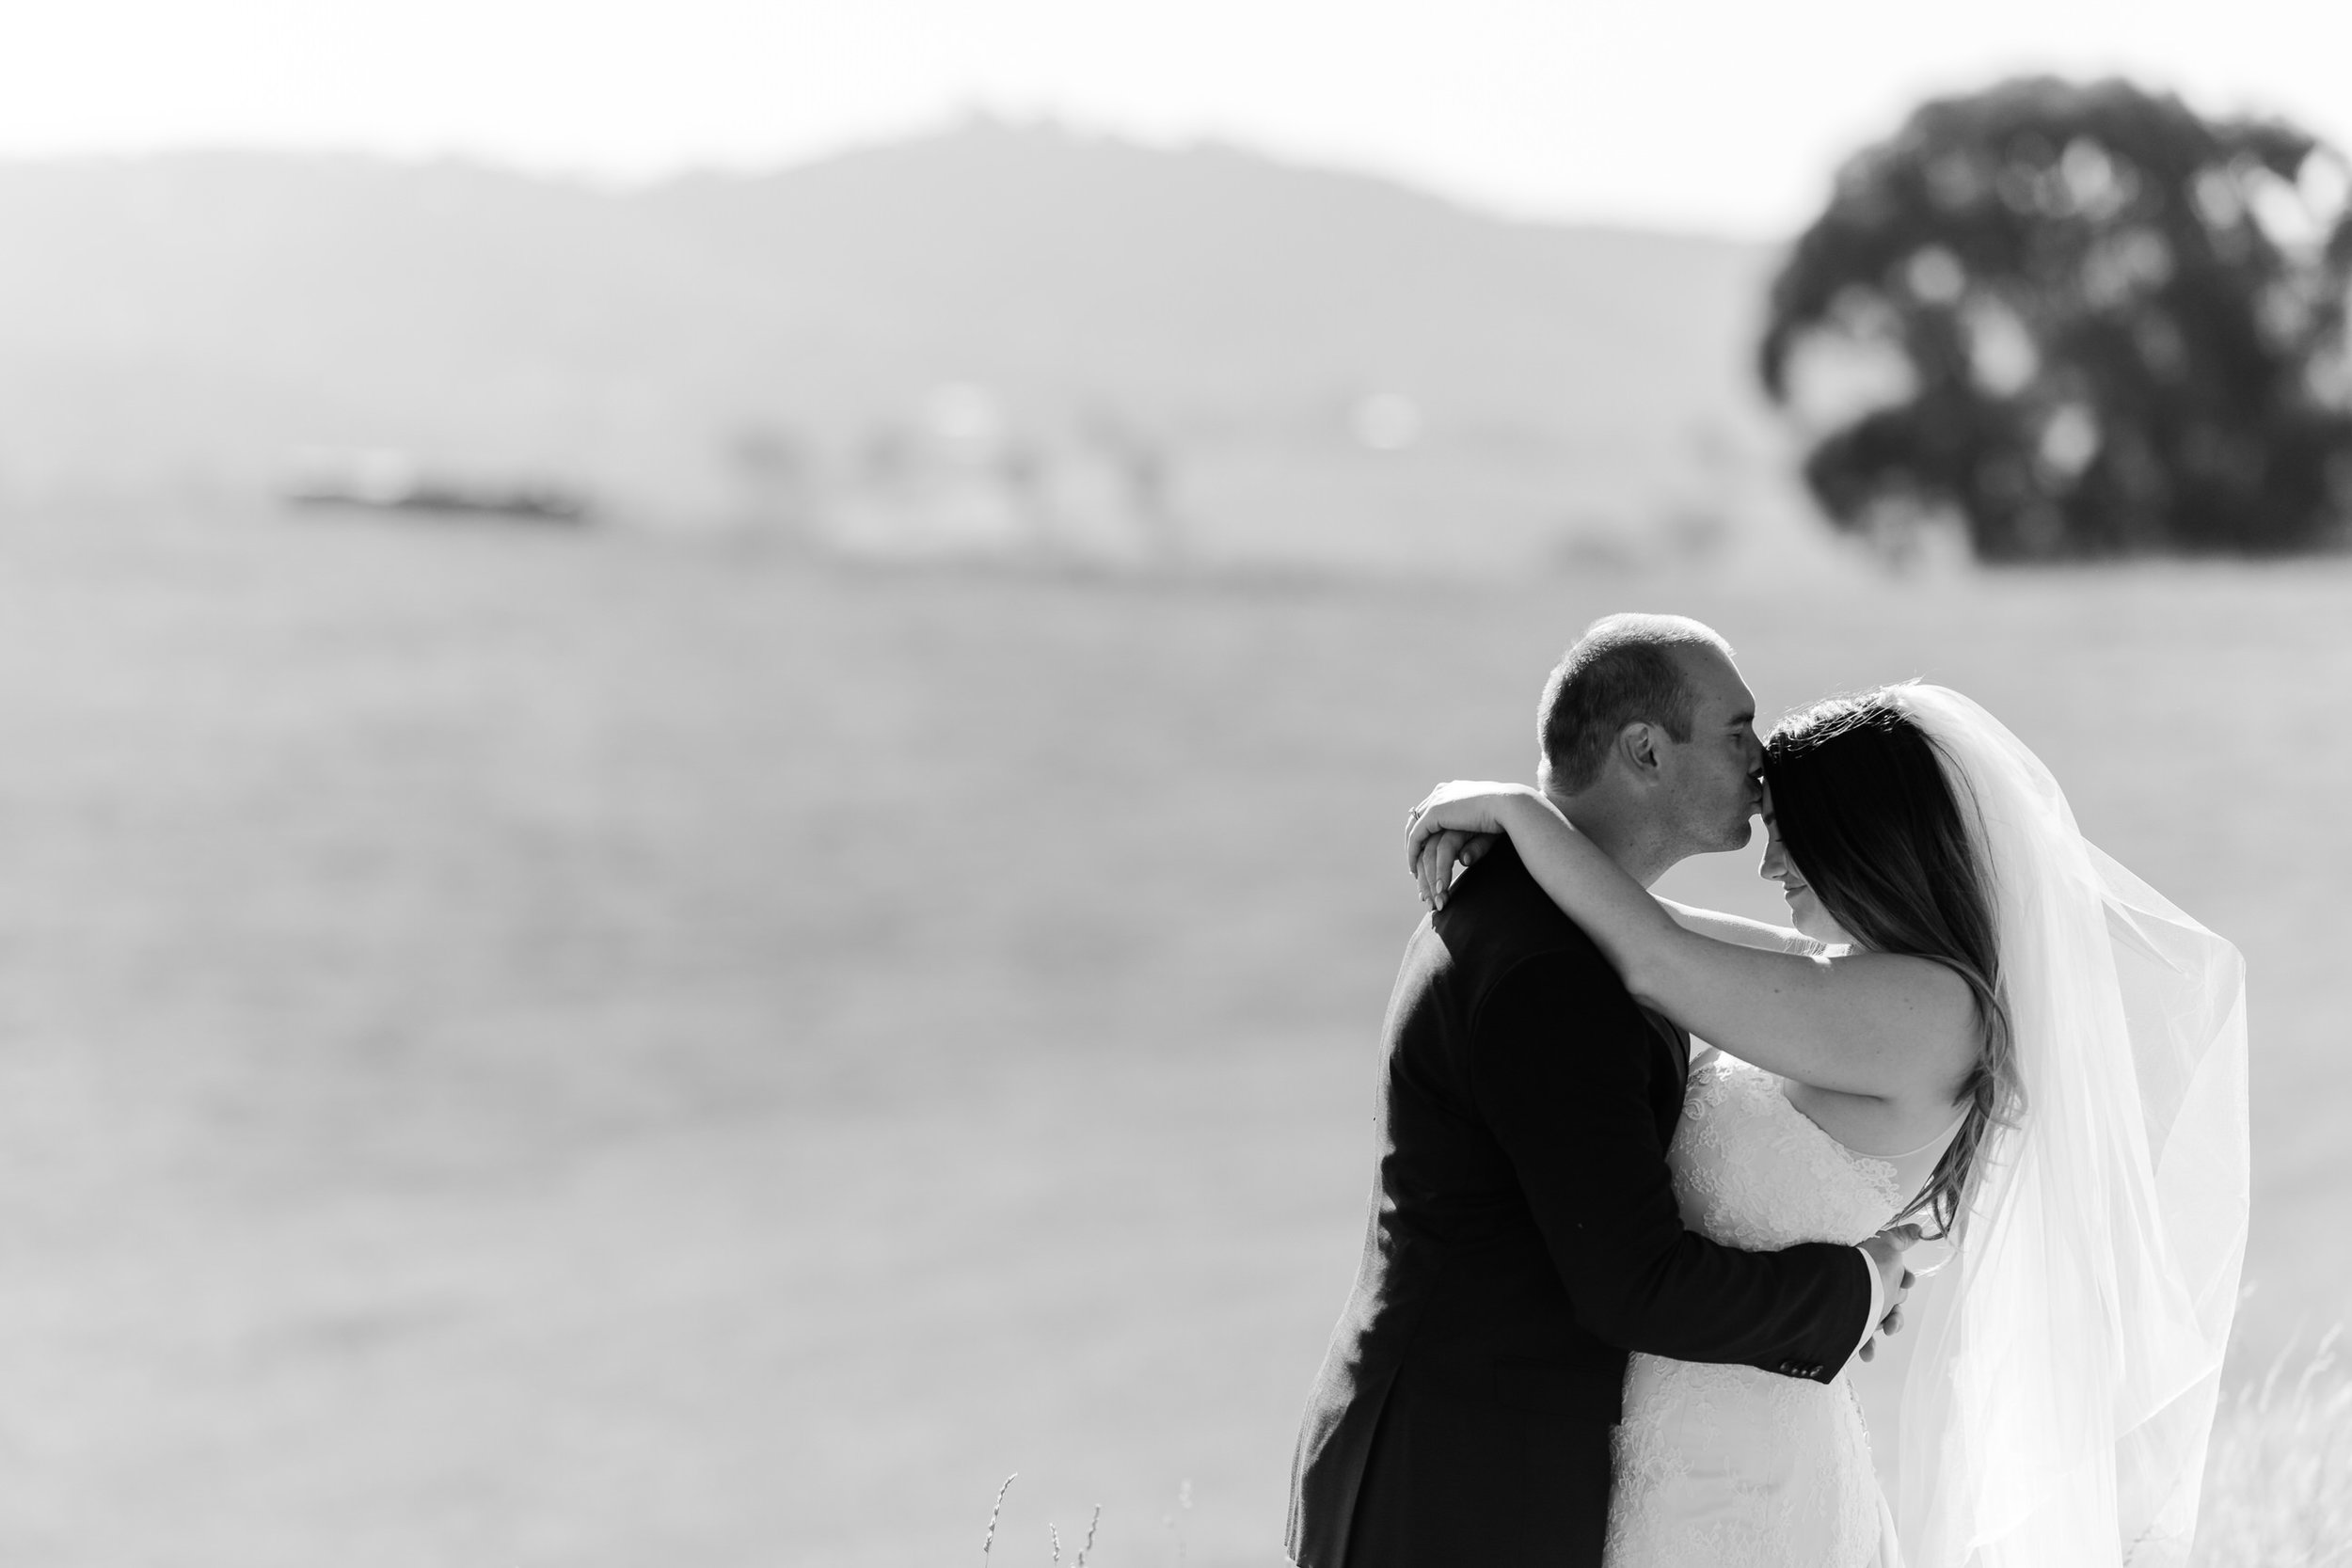 Justin_And_Jim_Photography_Balgownie_Winery_Wedding40.JPG